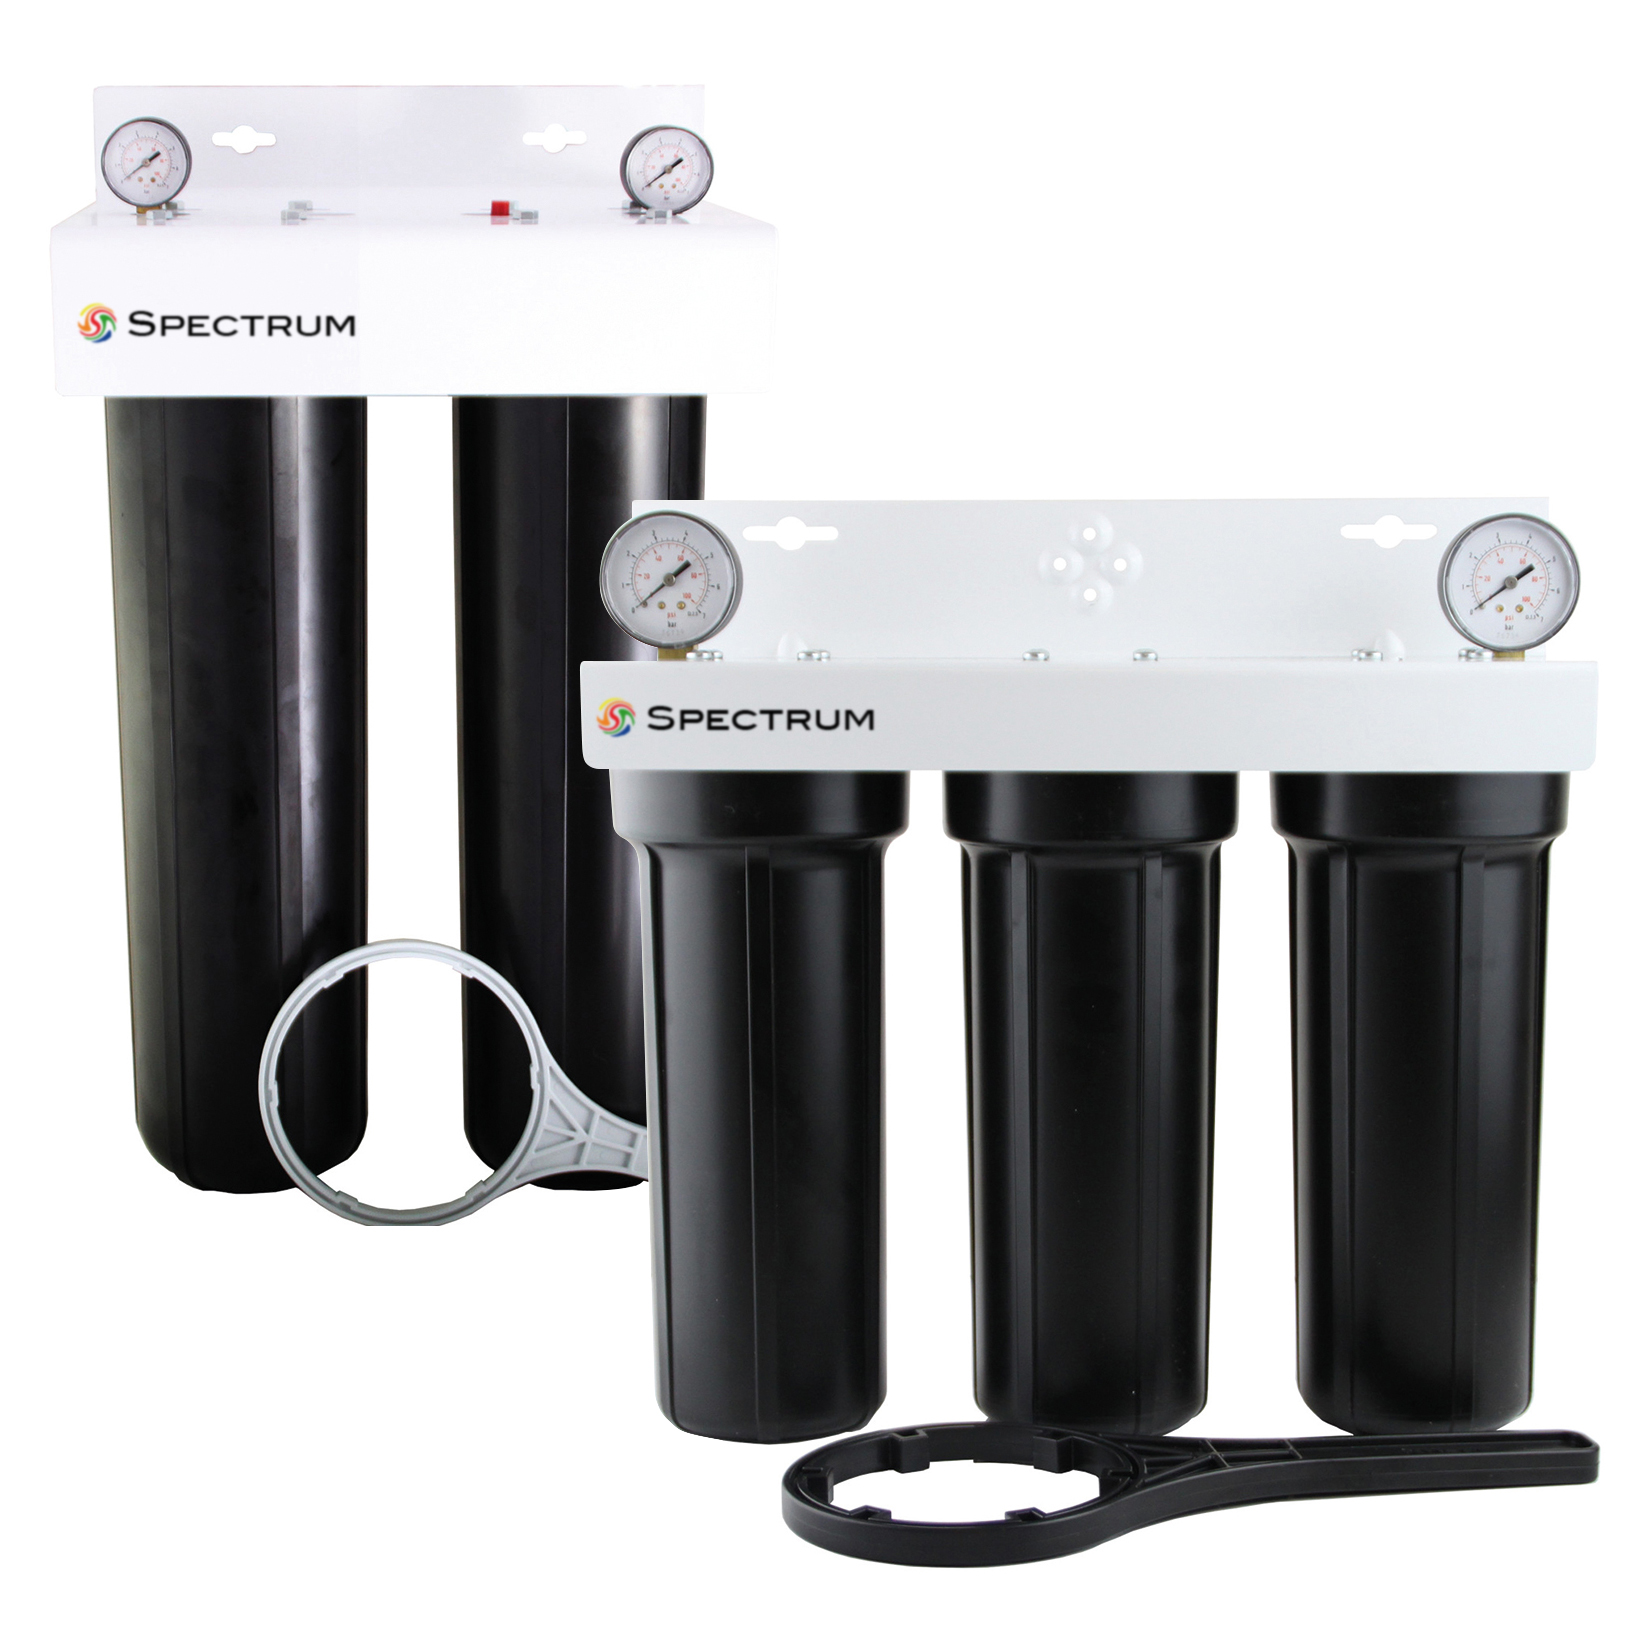 Filter Housing Systems